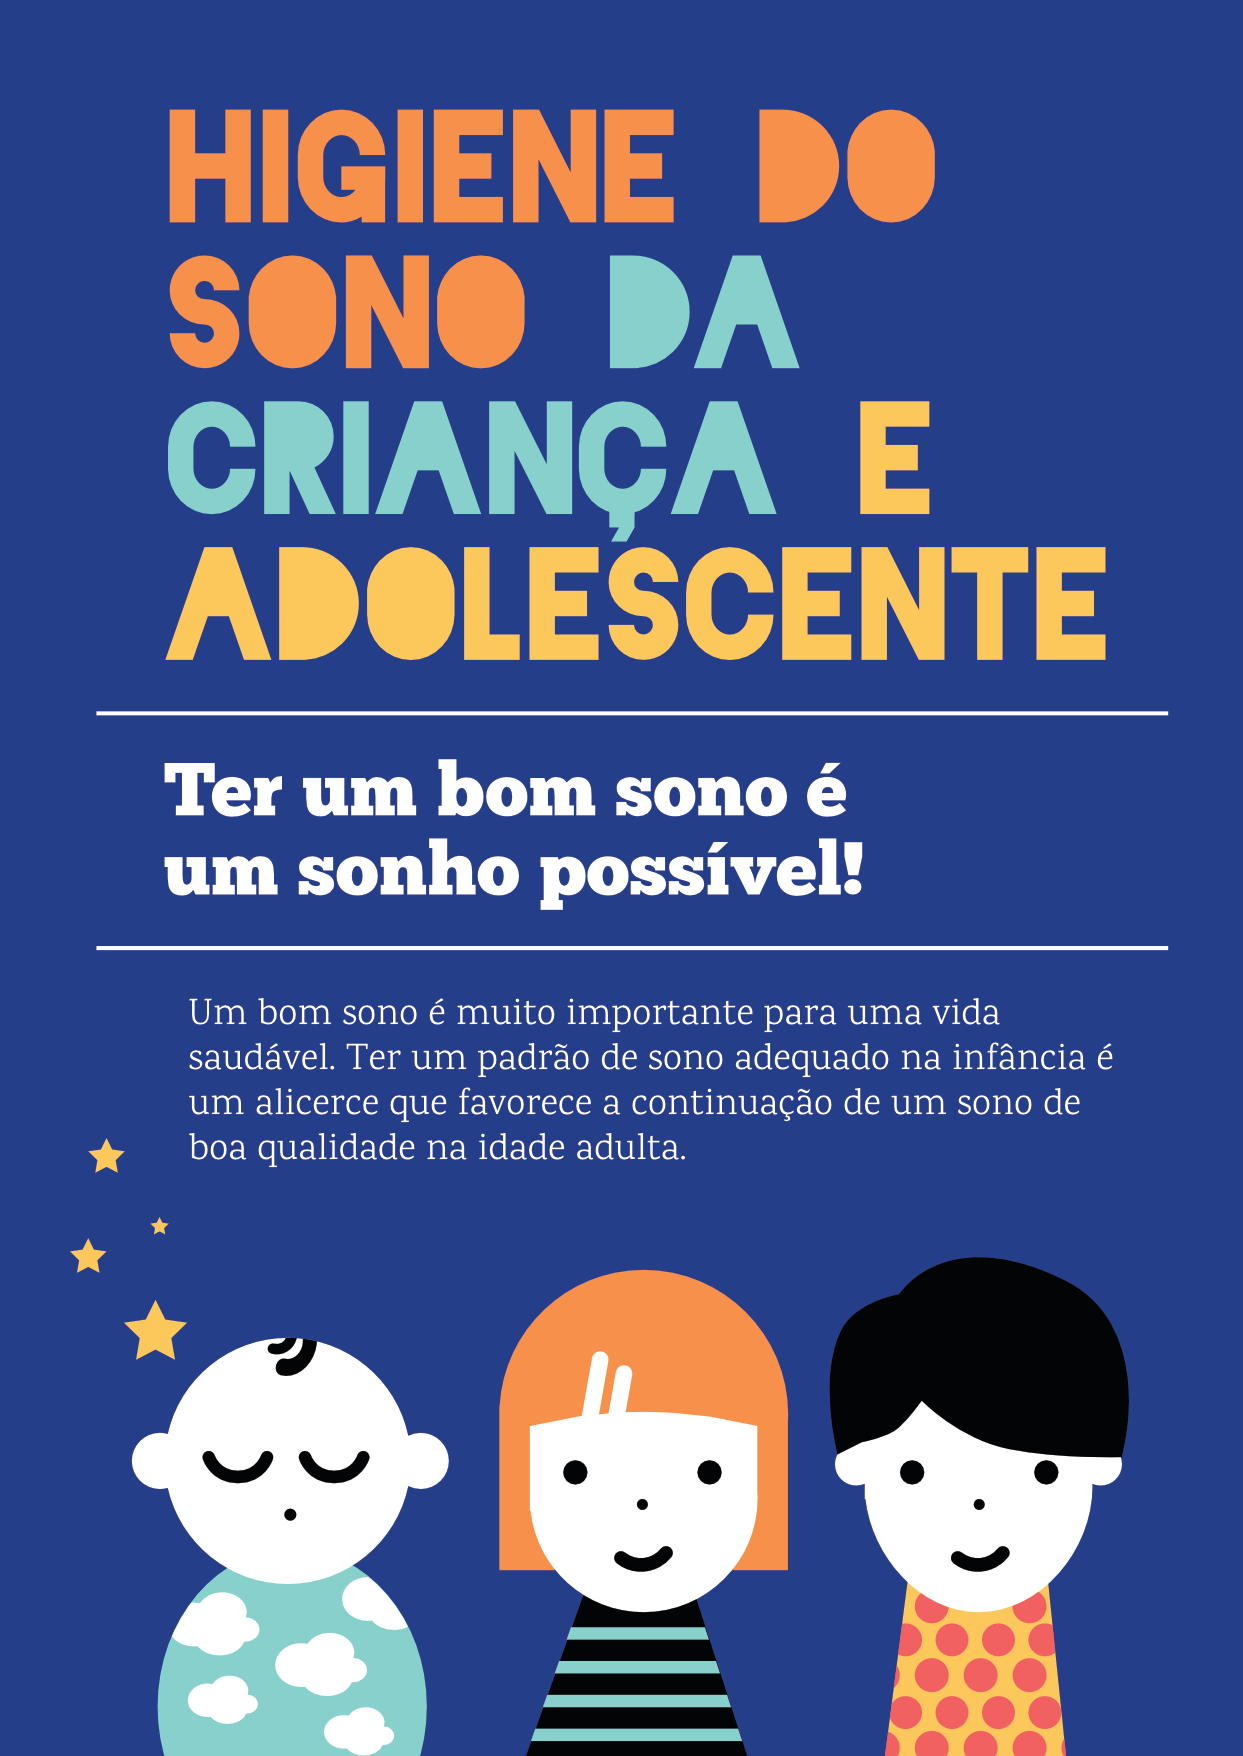 Higiene do sono da criança e do adolescente